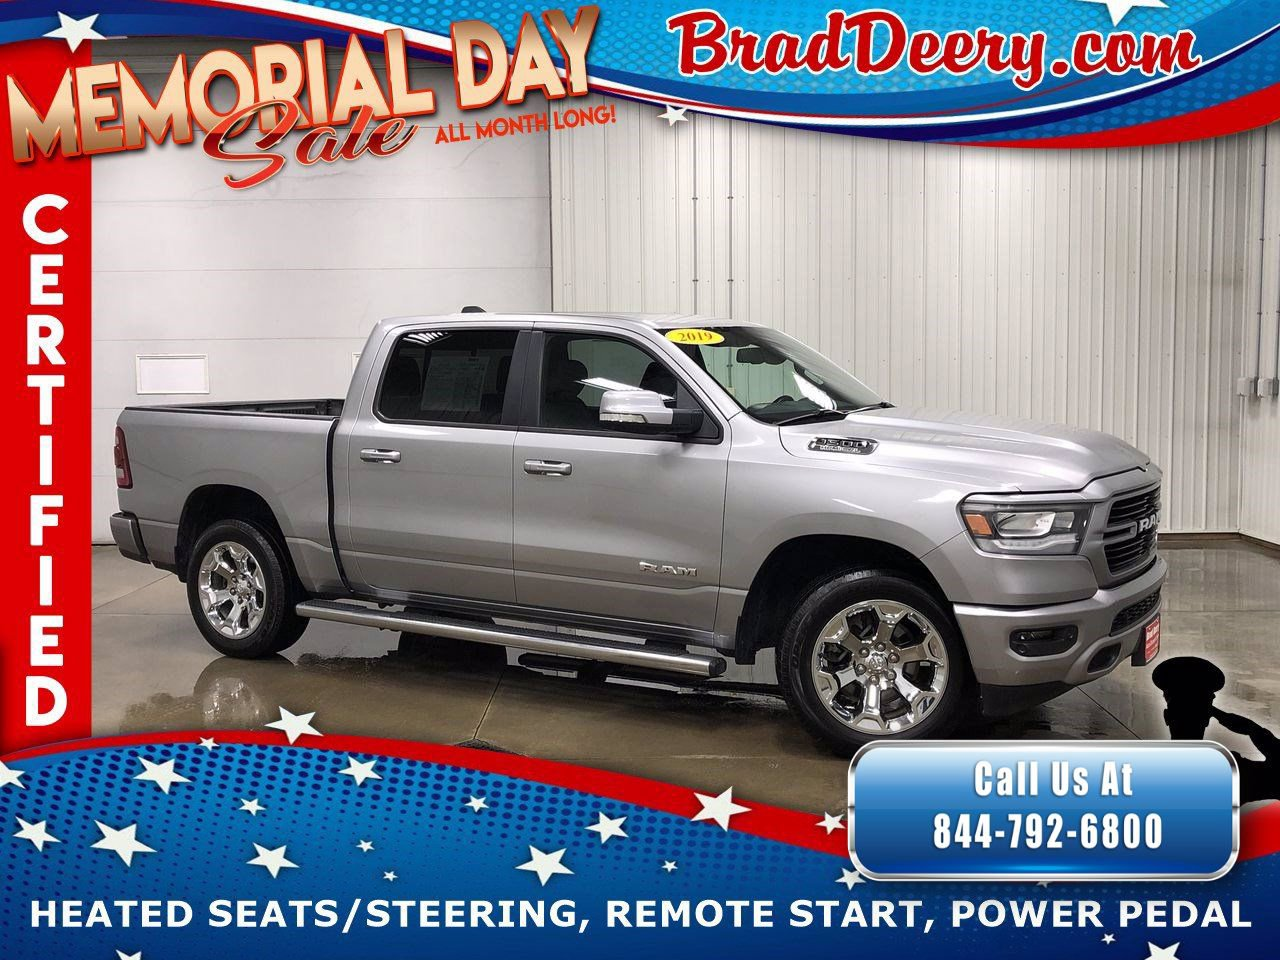 2019 Ram 1500 Big Horn Crew Cab 4X4 ** RAM CERTIFIED ** w/ Sport Pkg, 5.7 HEMI V8, Heated Seats & Remote Start